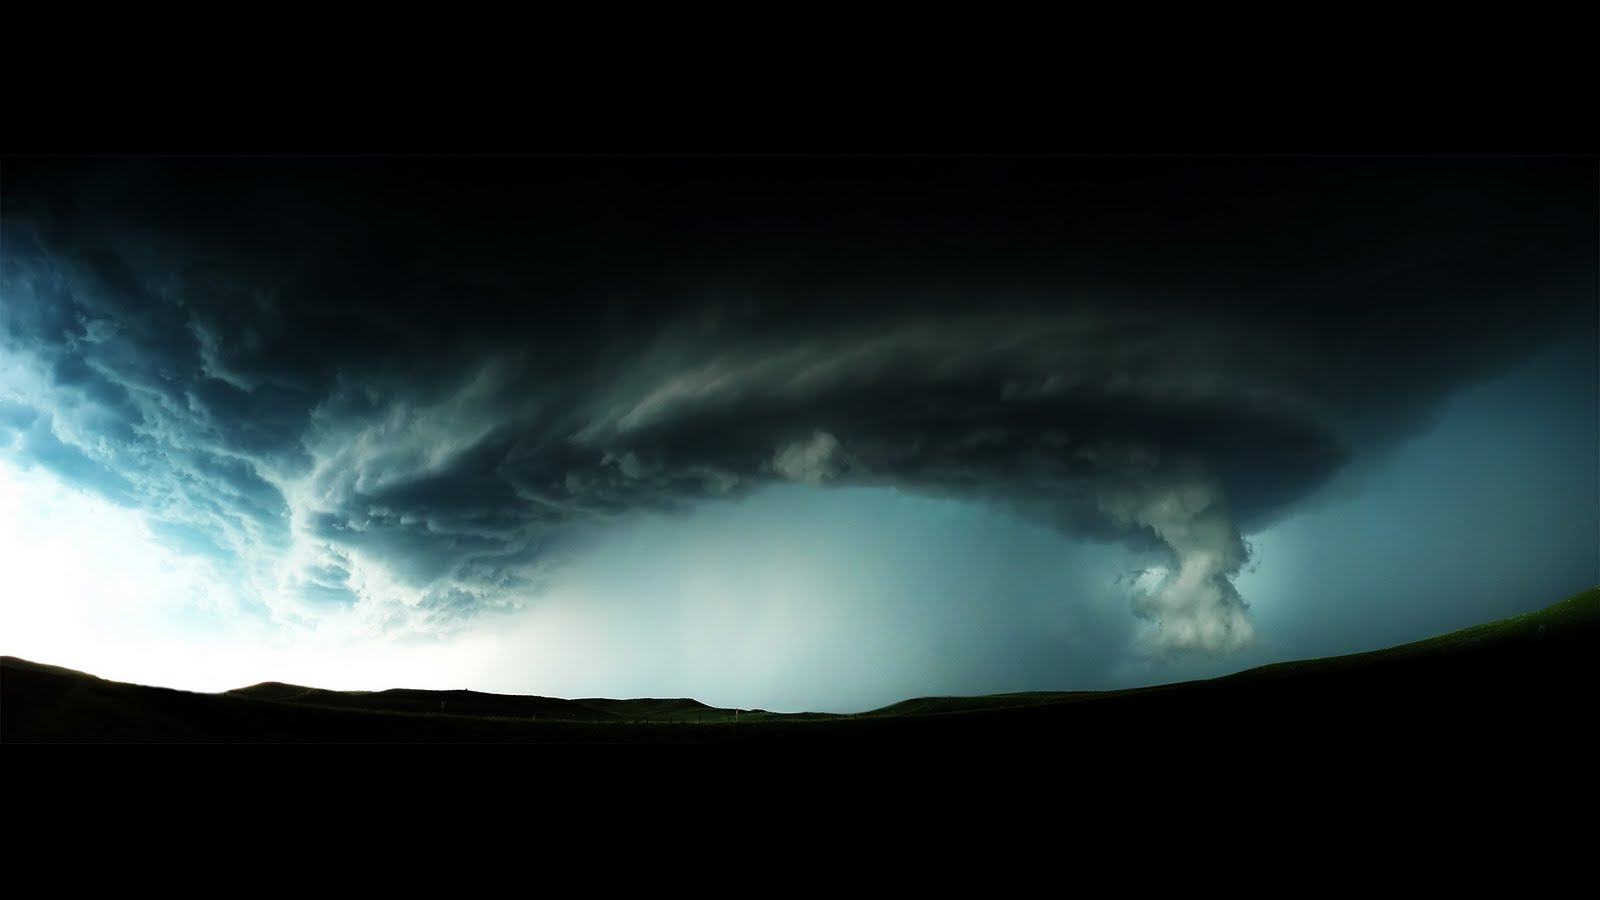 Tornado photos hd wallpapers hd nature wallpapers - Tornado images hd ...